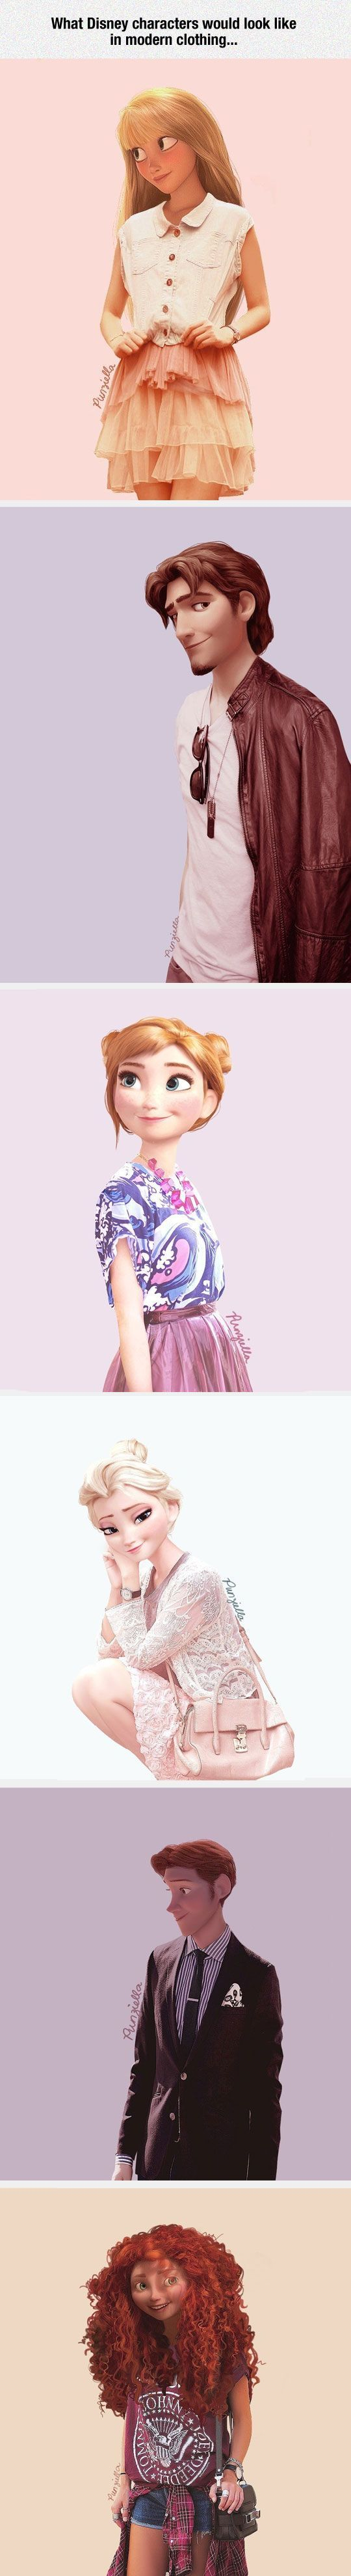 What Disney Characters Would Look Like Wearing Modern Clothing - LDS SMILE #Humor